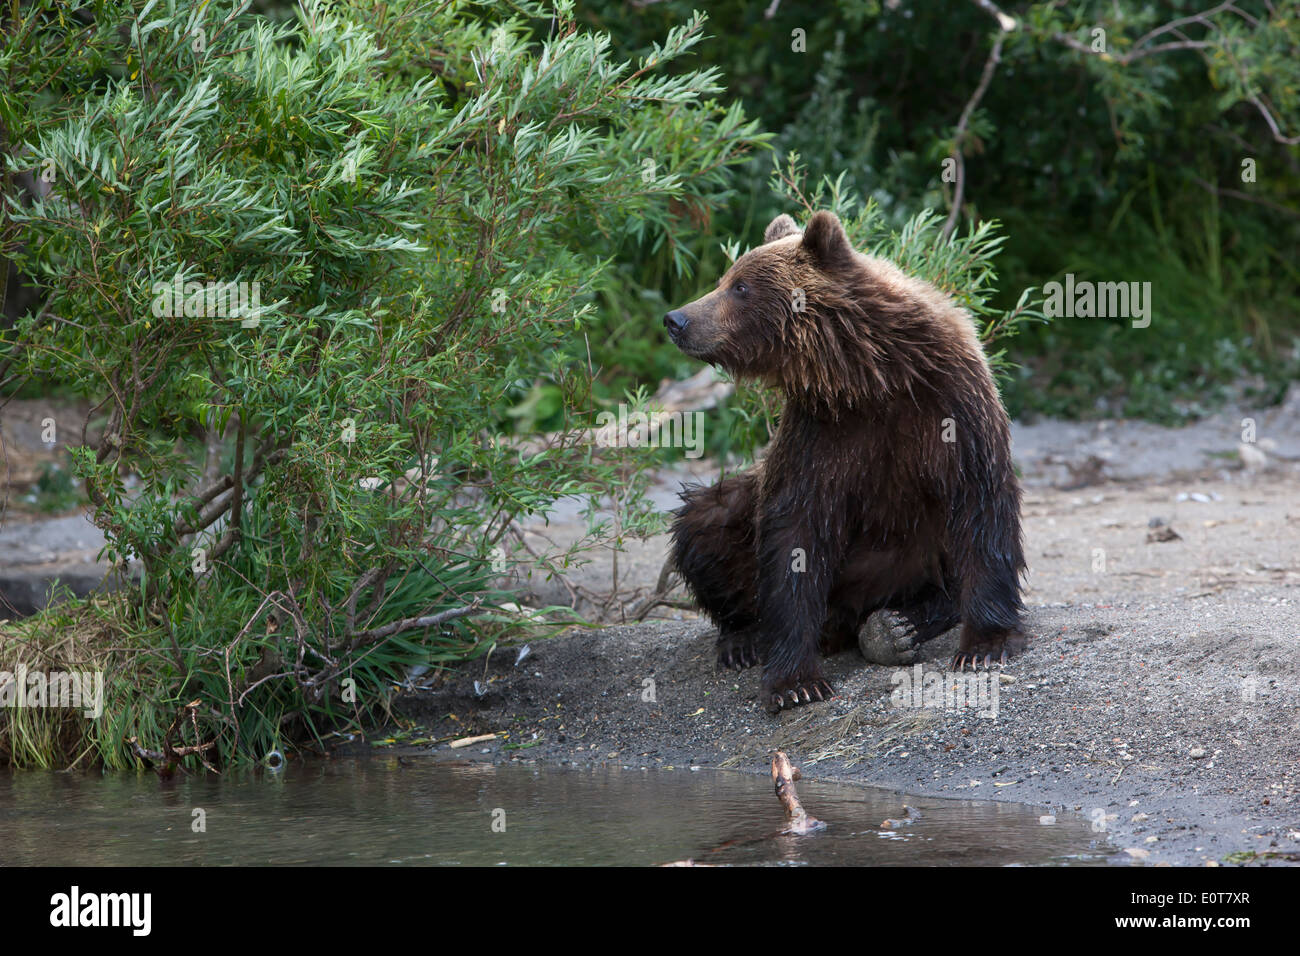 Brown bear is sitting on the edge of the stream - Stock Image